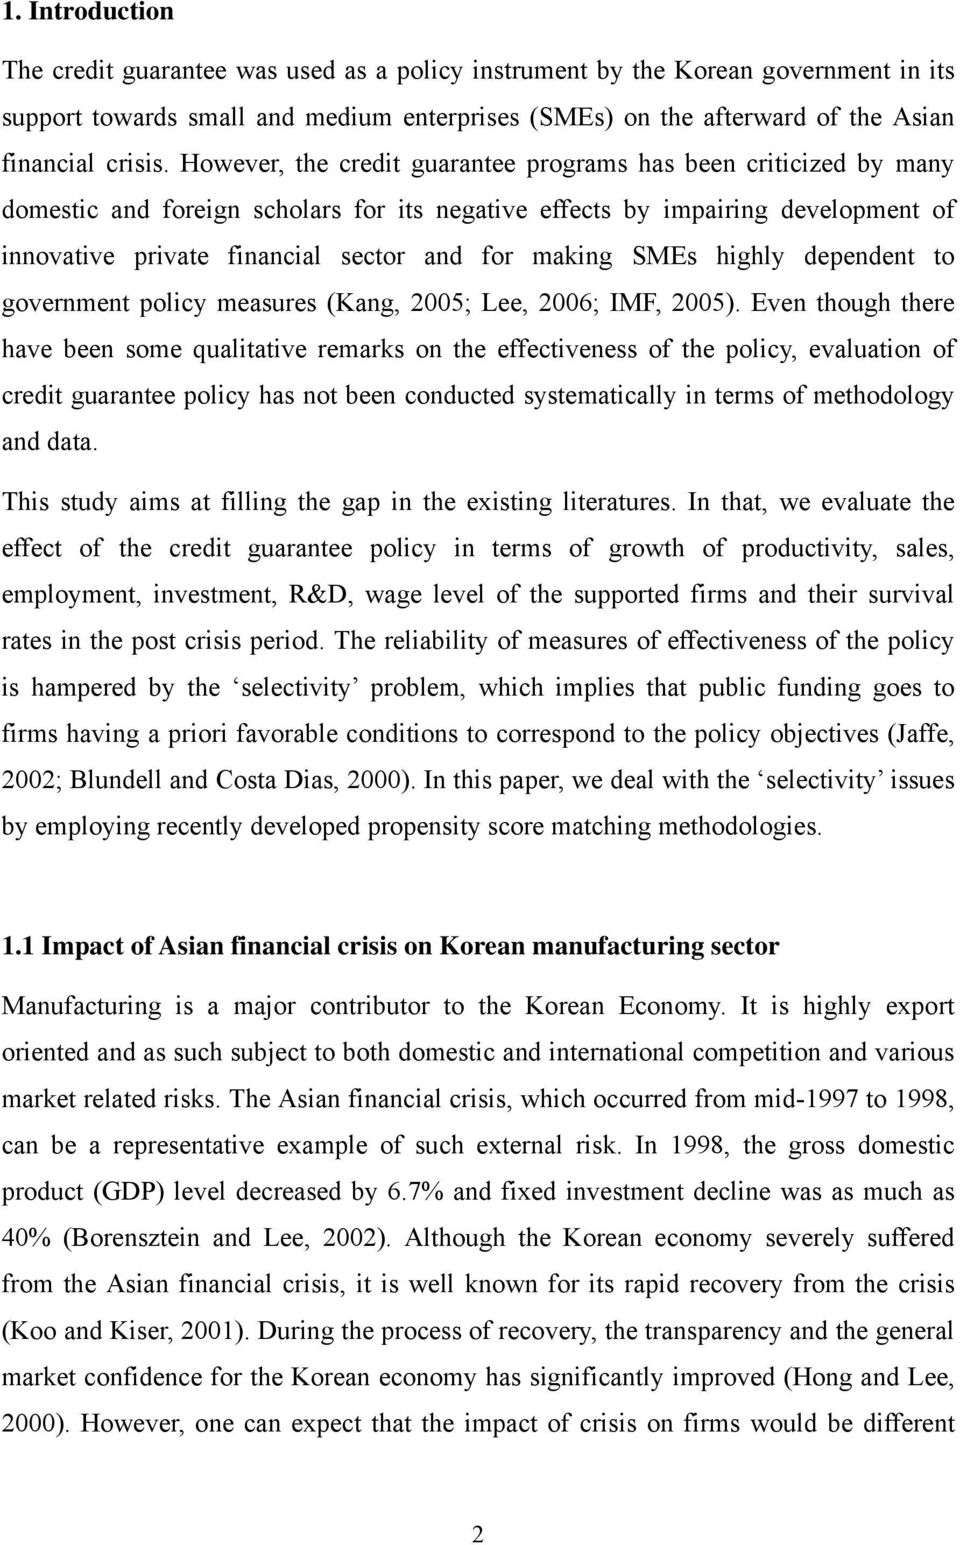 making SMEs highly dependent to government policy measures (Kang, 2005; Lee, 2006; IMF, 2005).